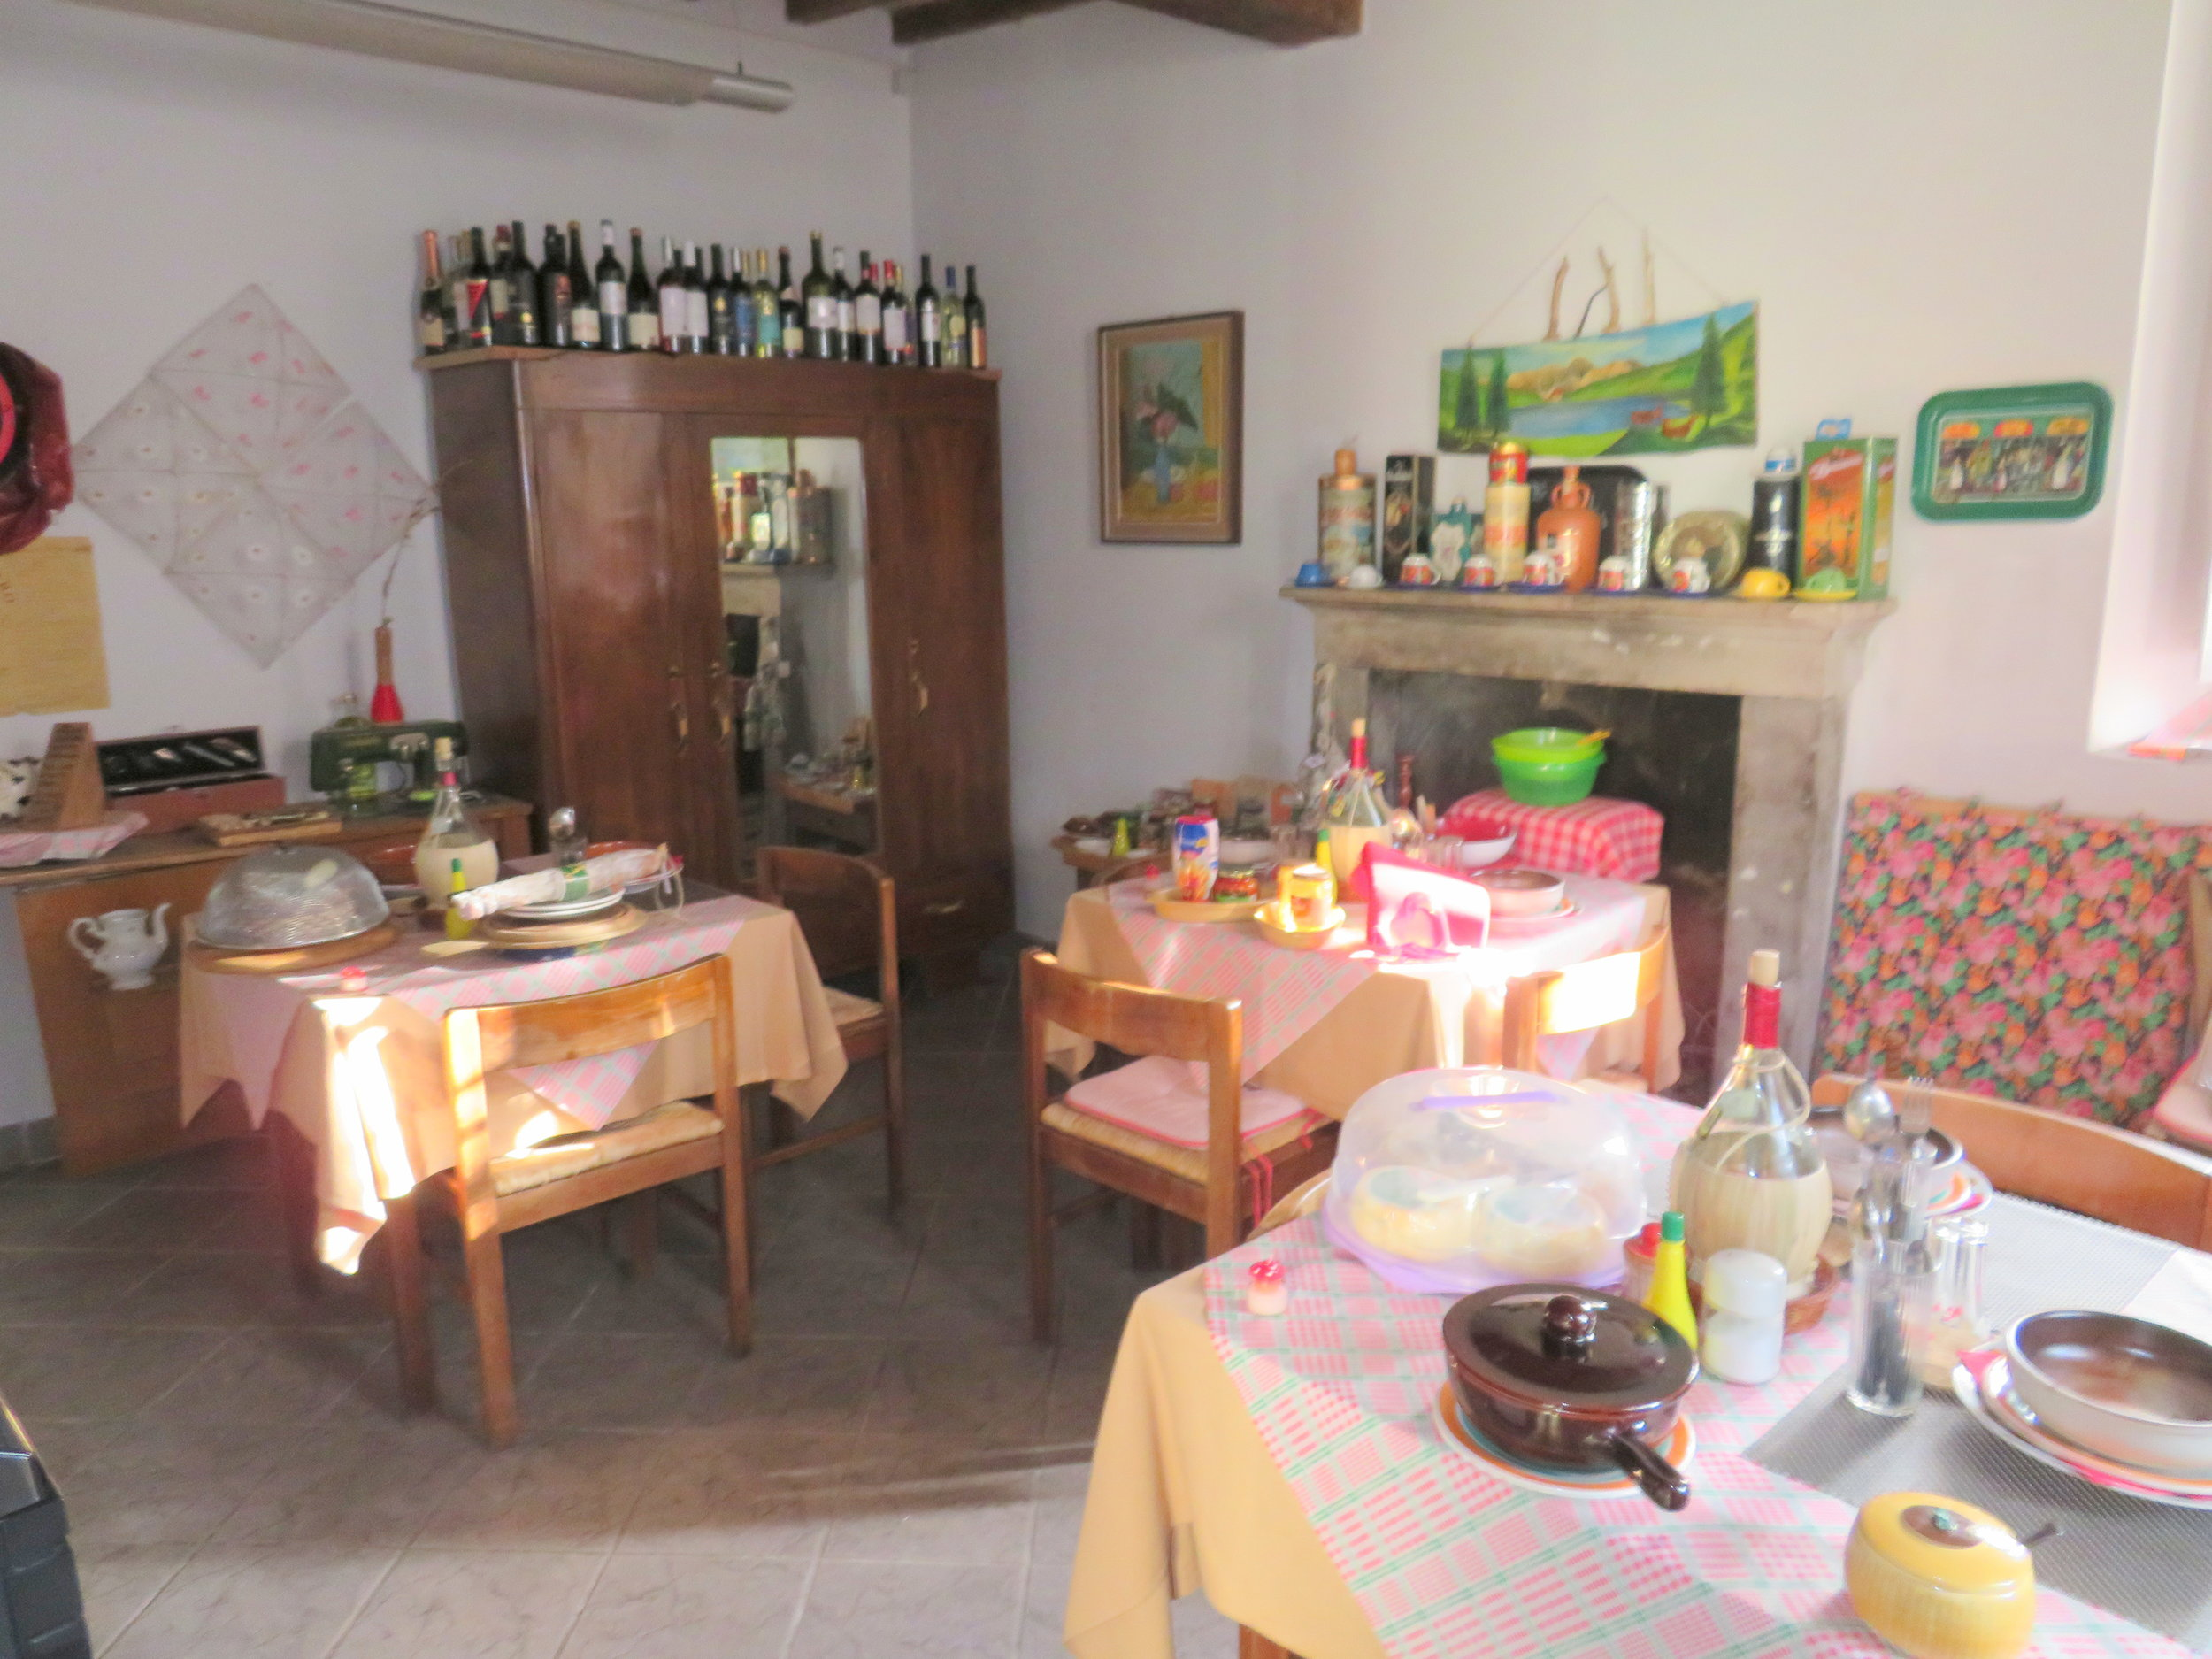 DIY dinner by donation at Ostello Cassio